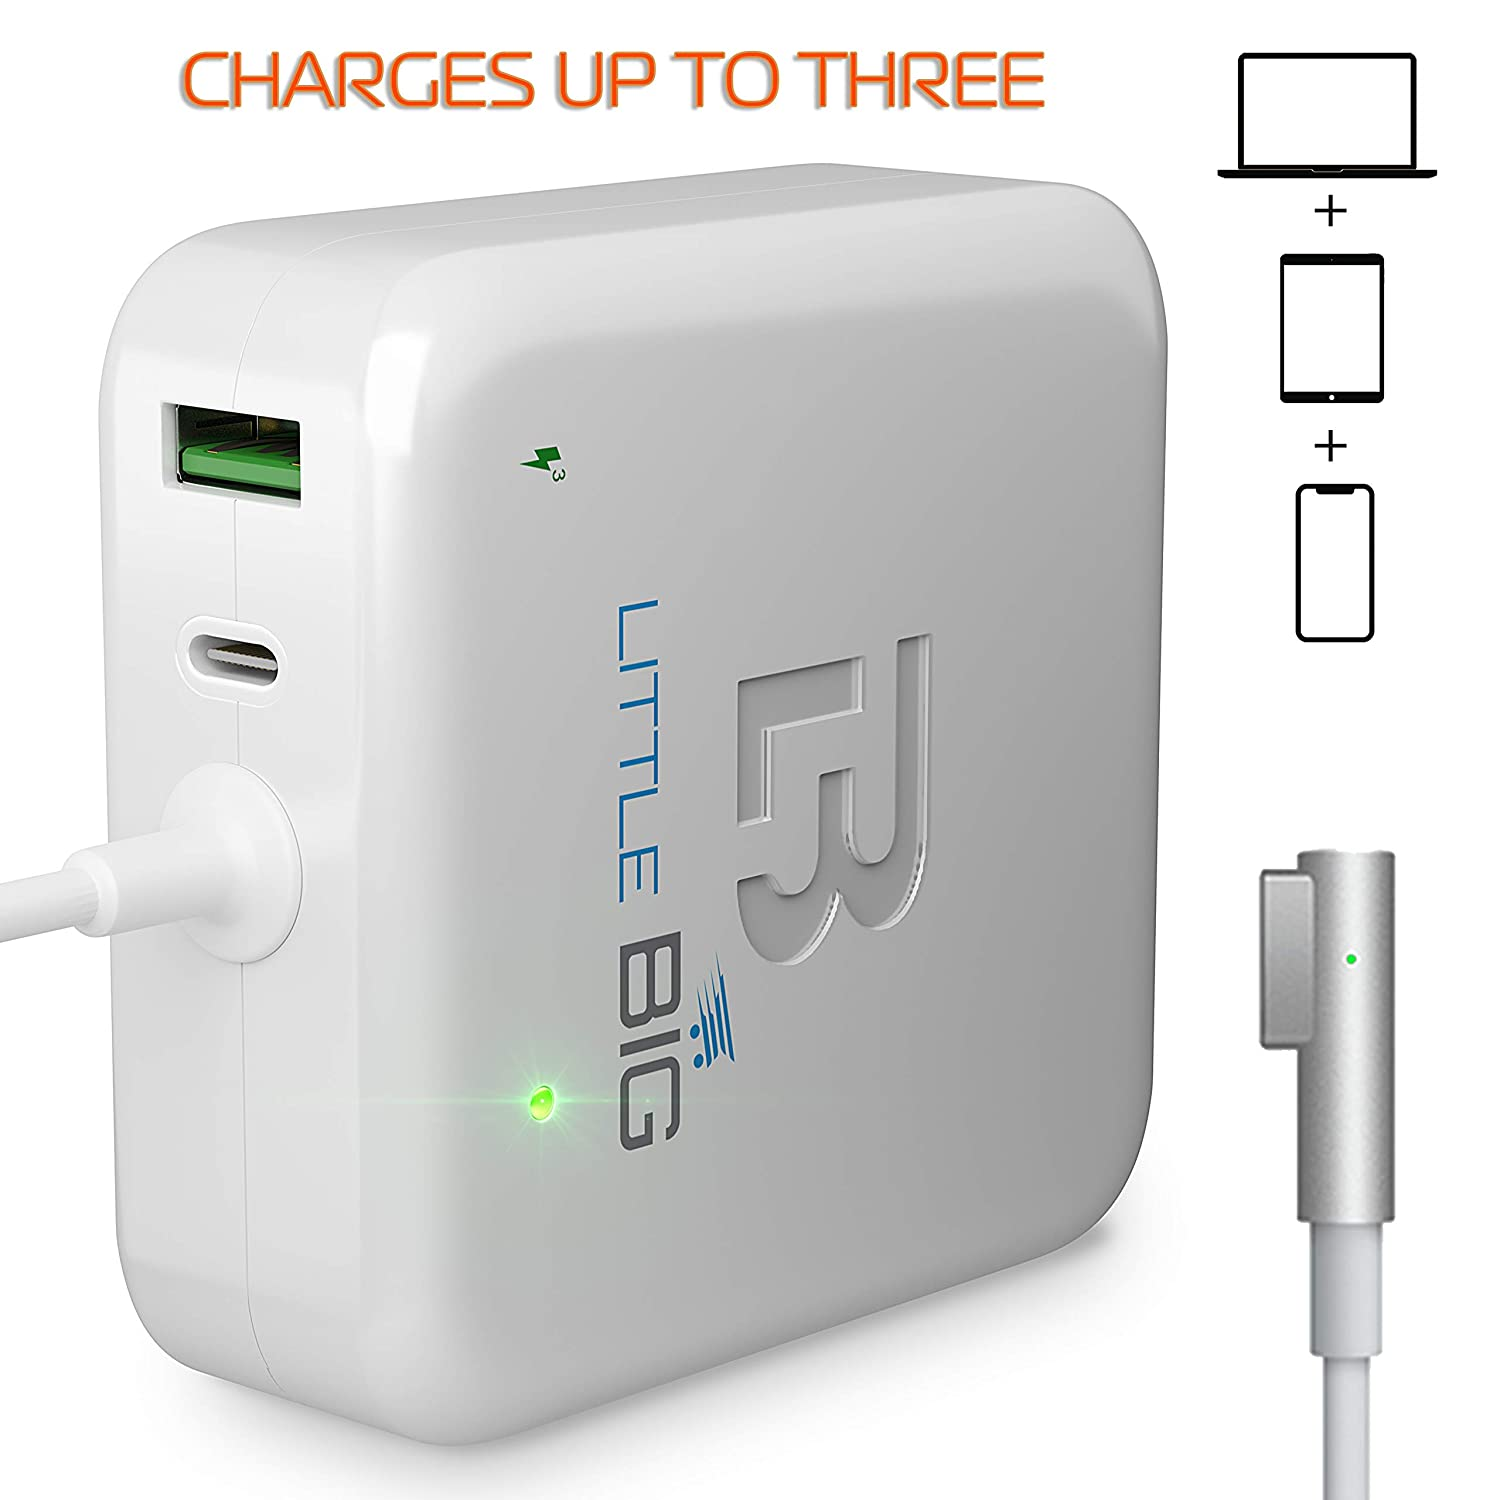 60W Power Adapter Magsafe 1 L-tip Style Connector Replacement MacBook Pro Charger for Apple MacBook Pro Retina 11 inch//13 inch White MacBook Pro Charger